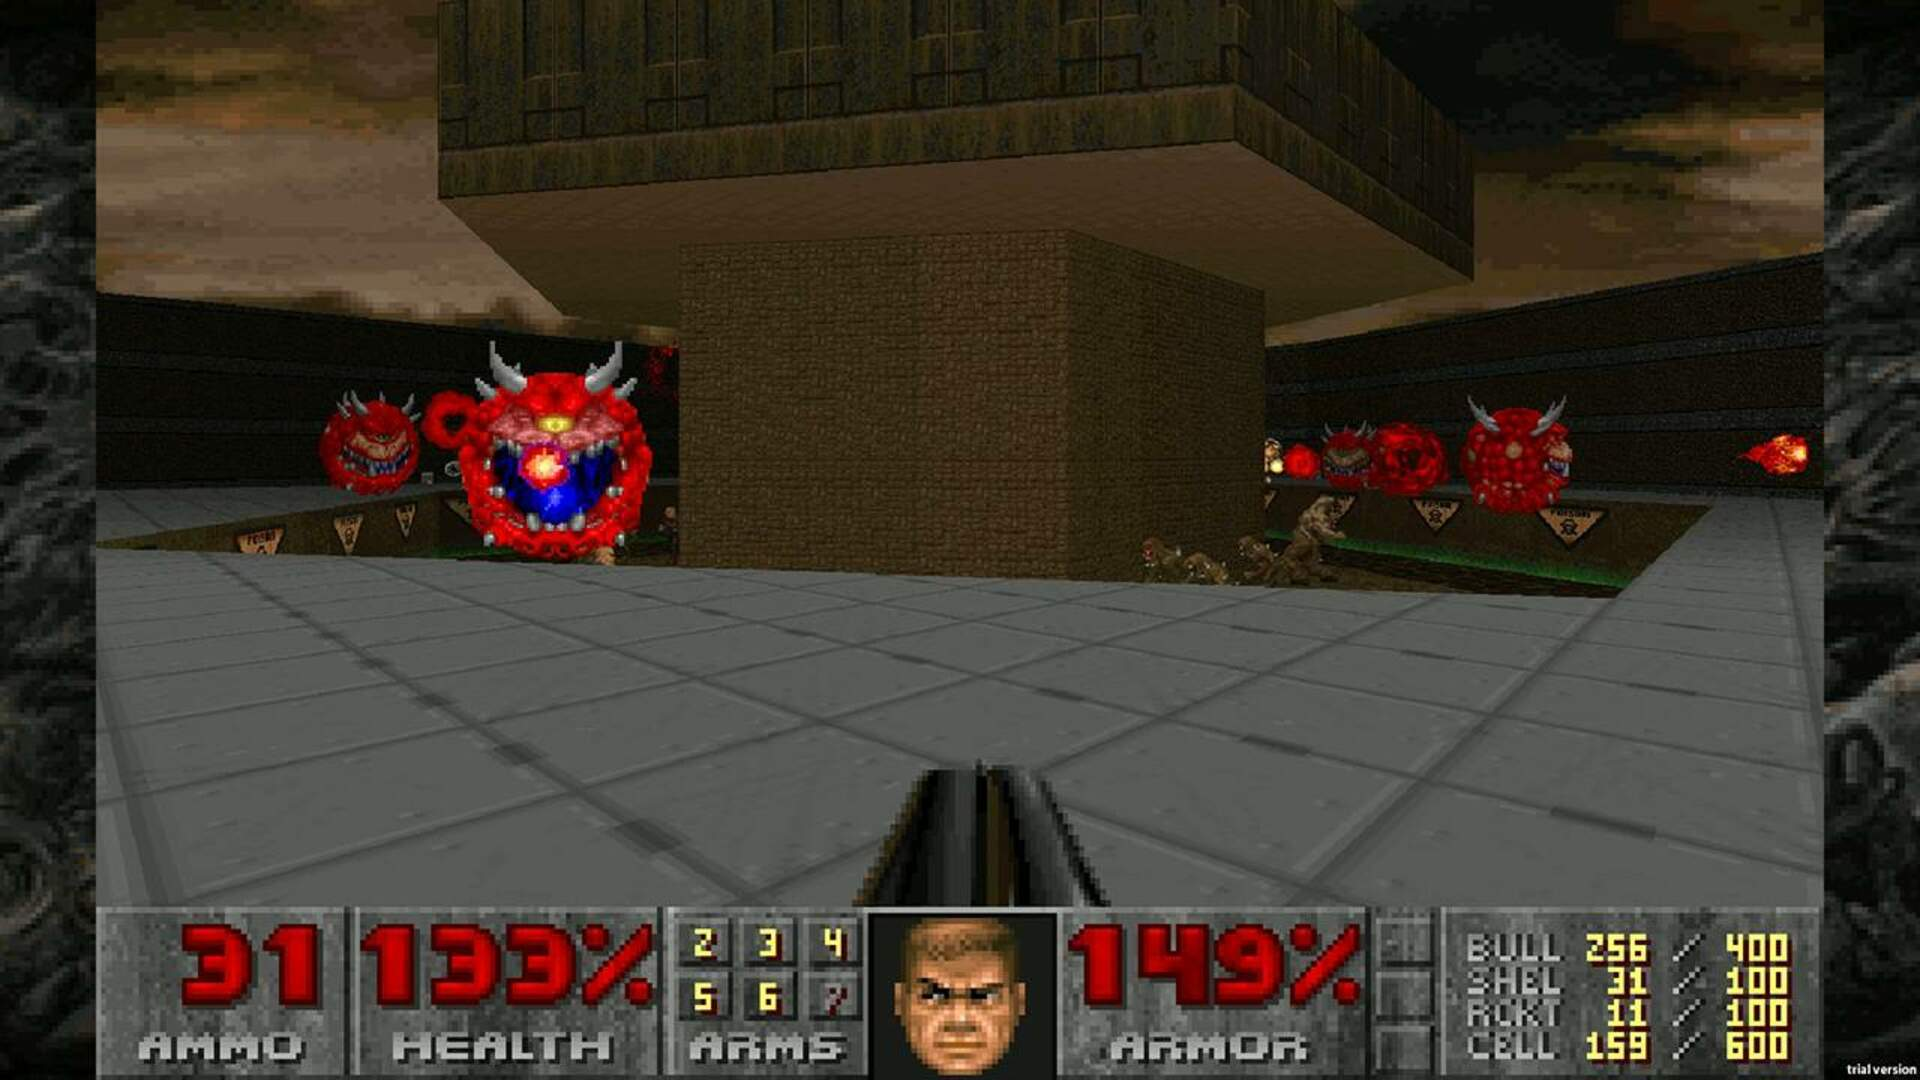 Bethesda Explains Reason for Controversial Doom Login and Announces Upcoming Fix